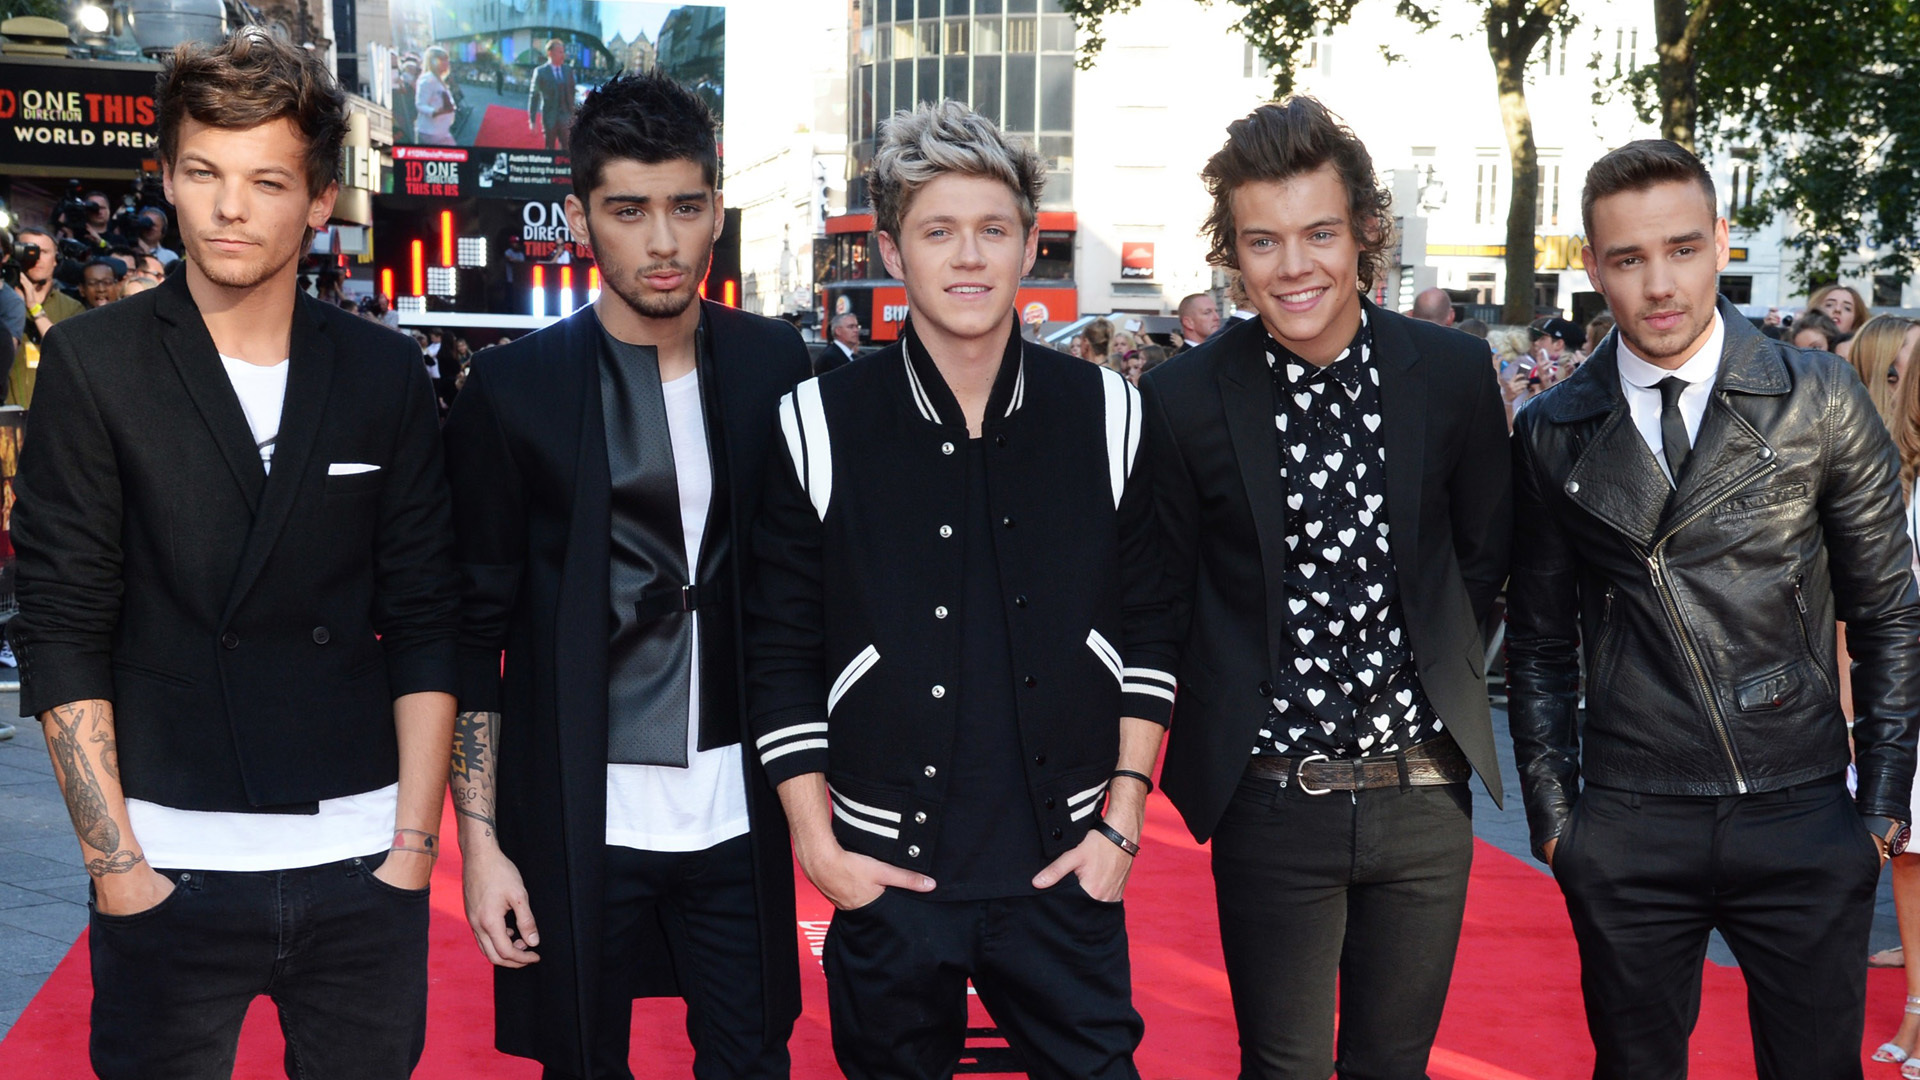 One Direction Wallpapers Images Photos Pictures Backgrounds